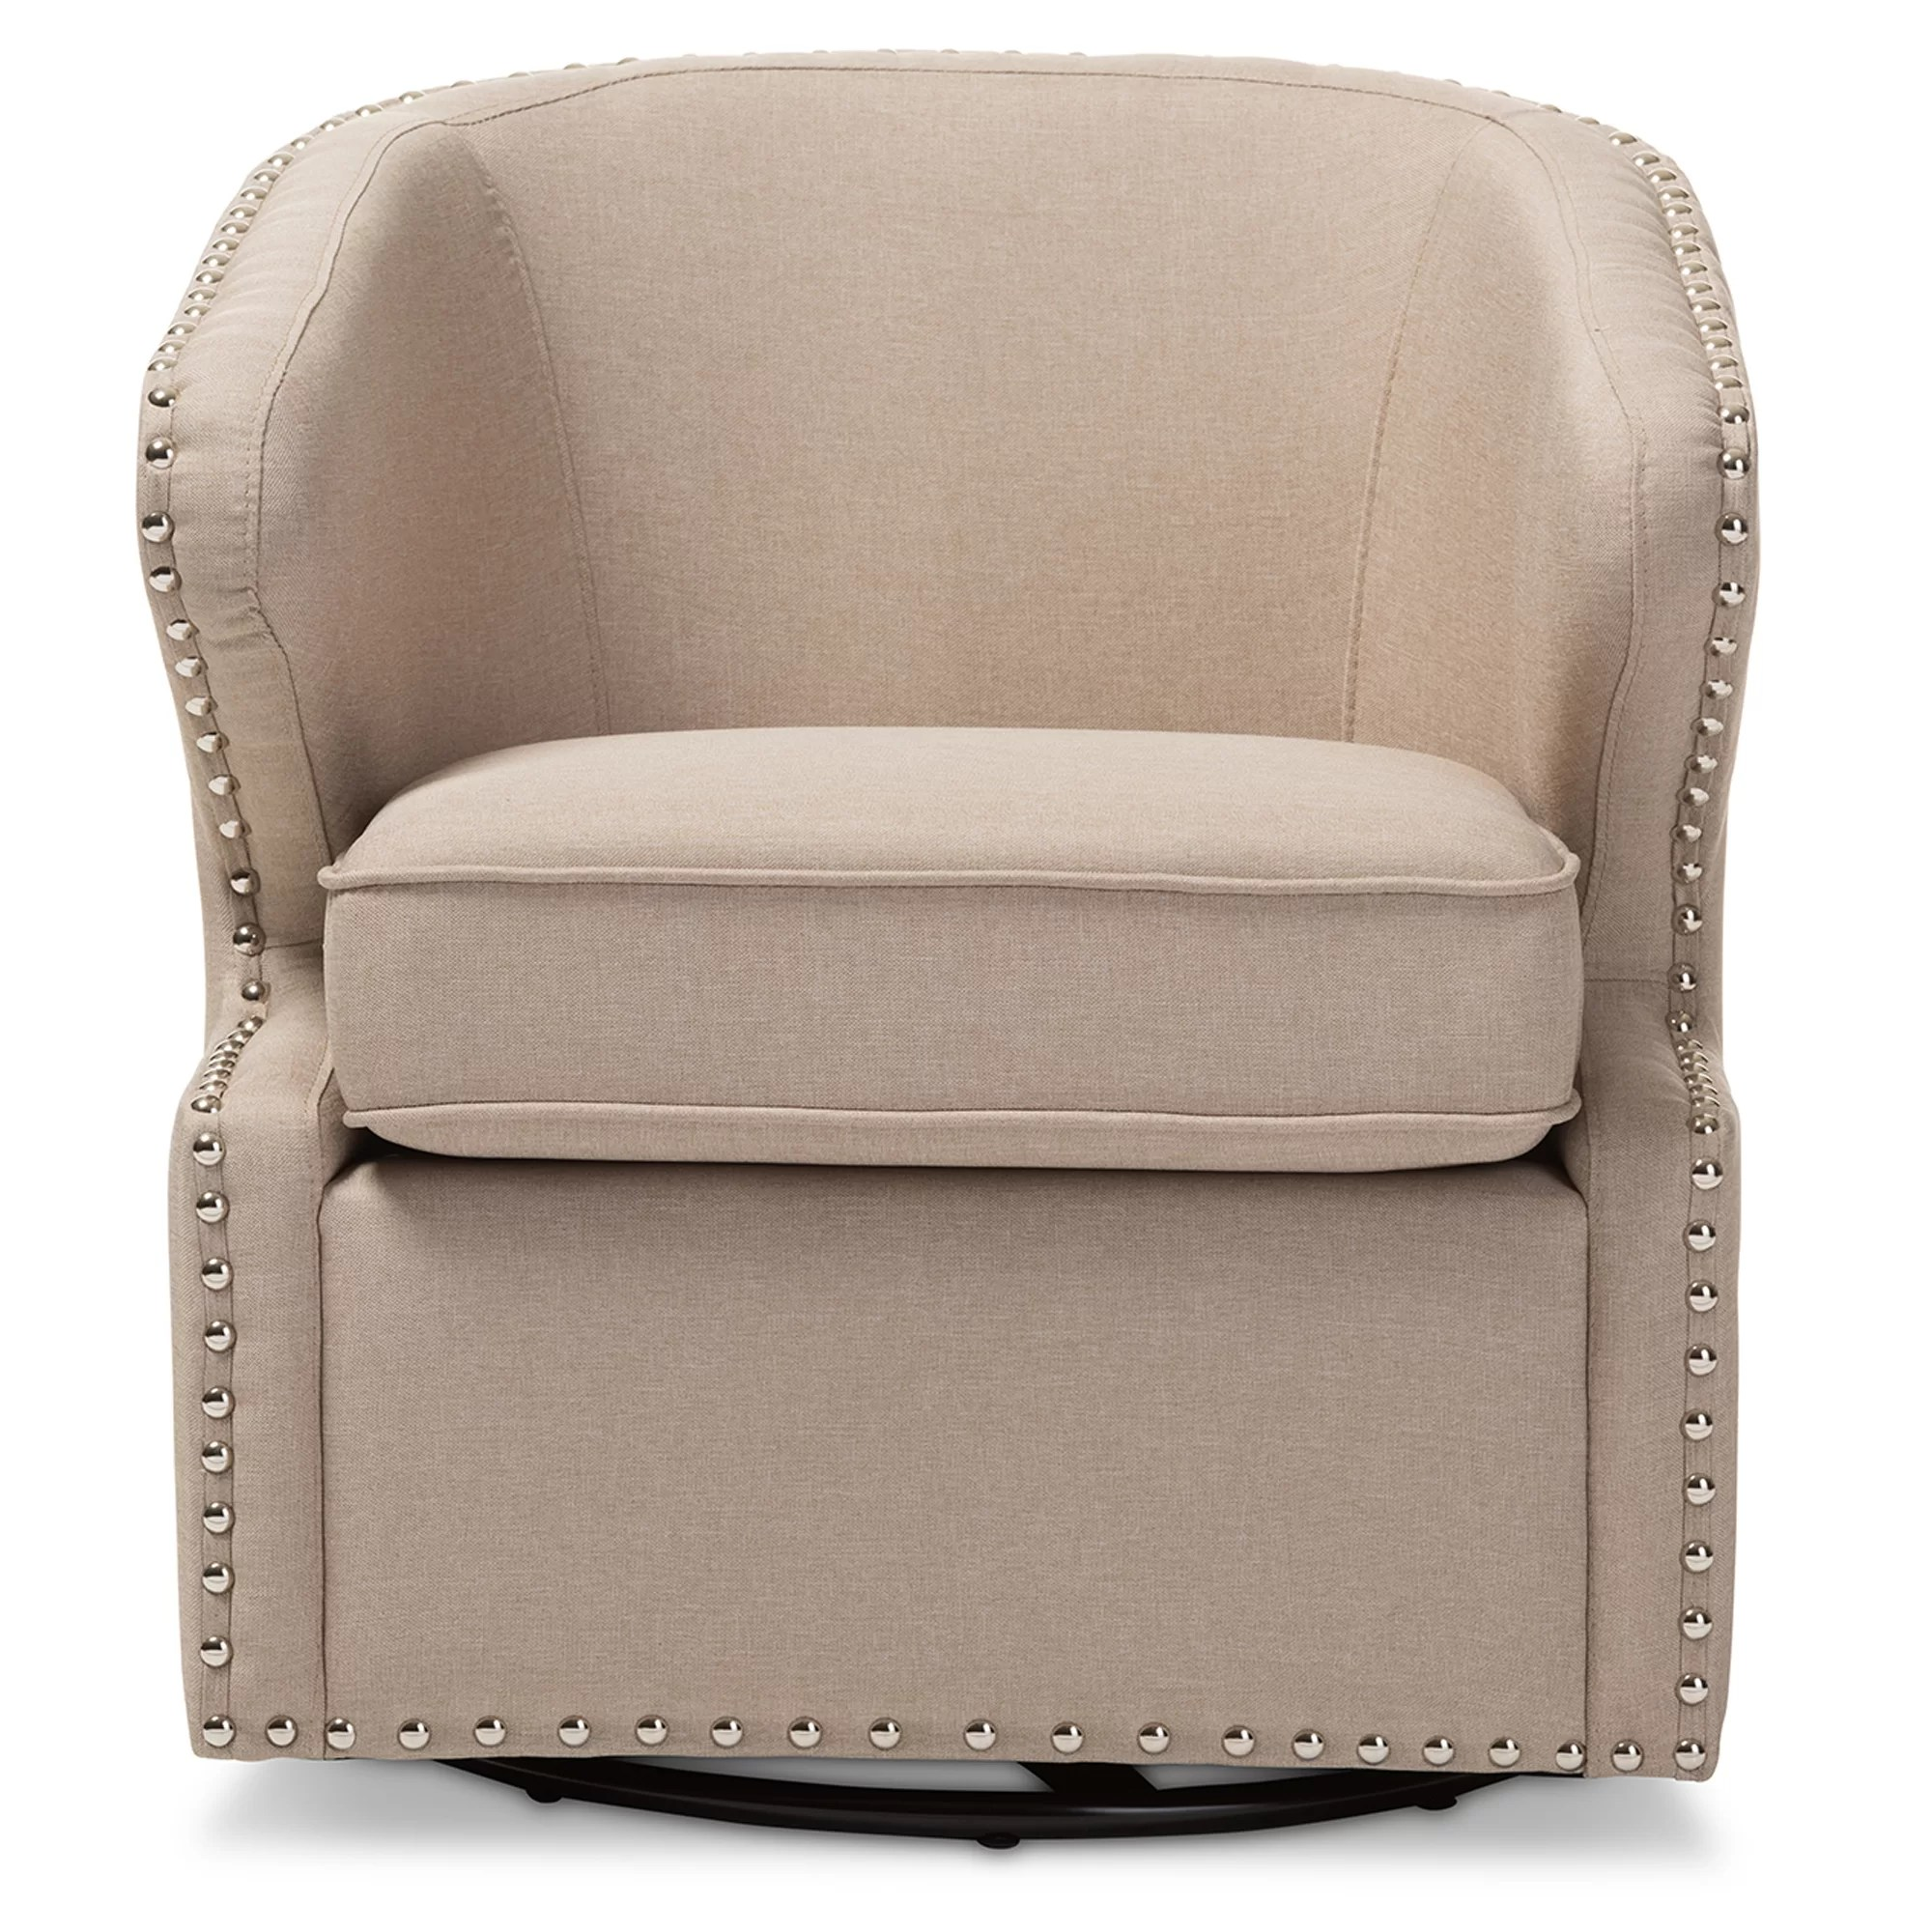 Upholstered Accent Chairs With Arms Wholesale Interiors Baxton Studio Finley Upholstered